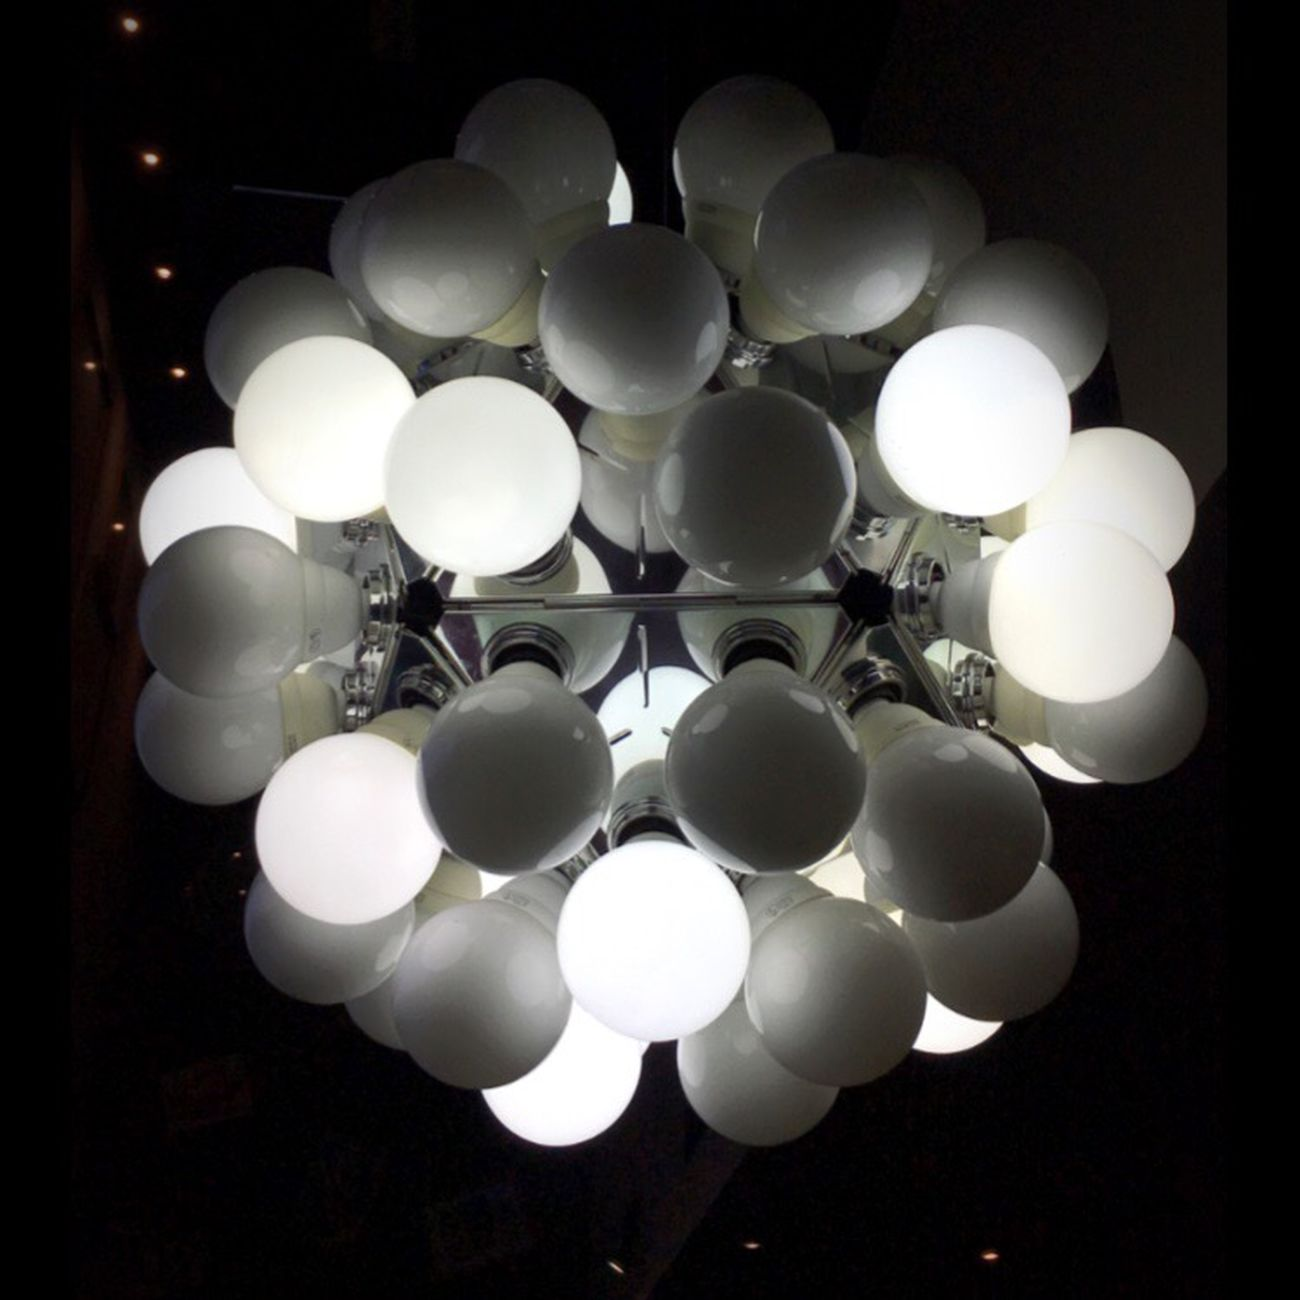 Lamps Lamp Lampshade Lamps And Lights. Lampshades Lamps Collection Lamps And Shadows Lamps And Lighting Lamps,